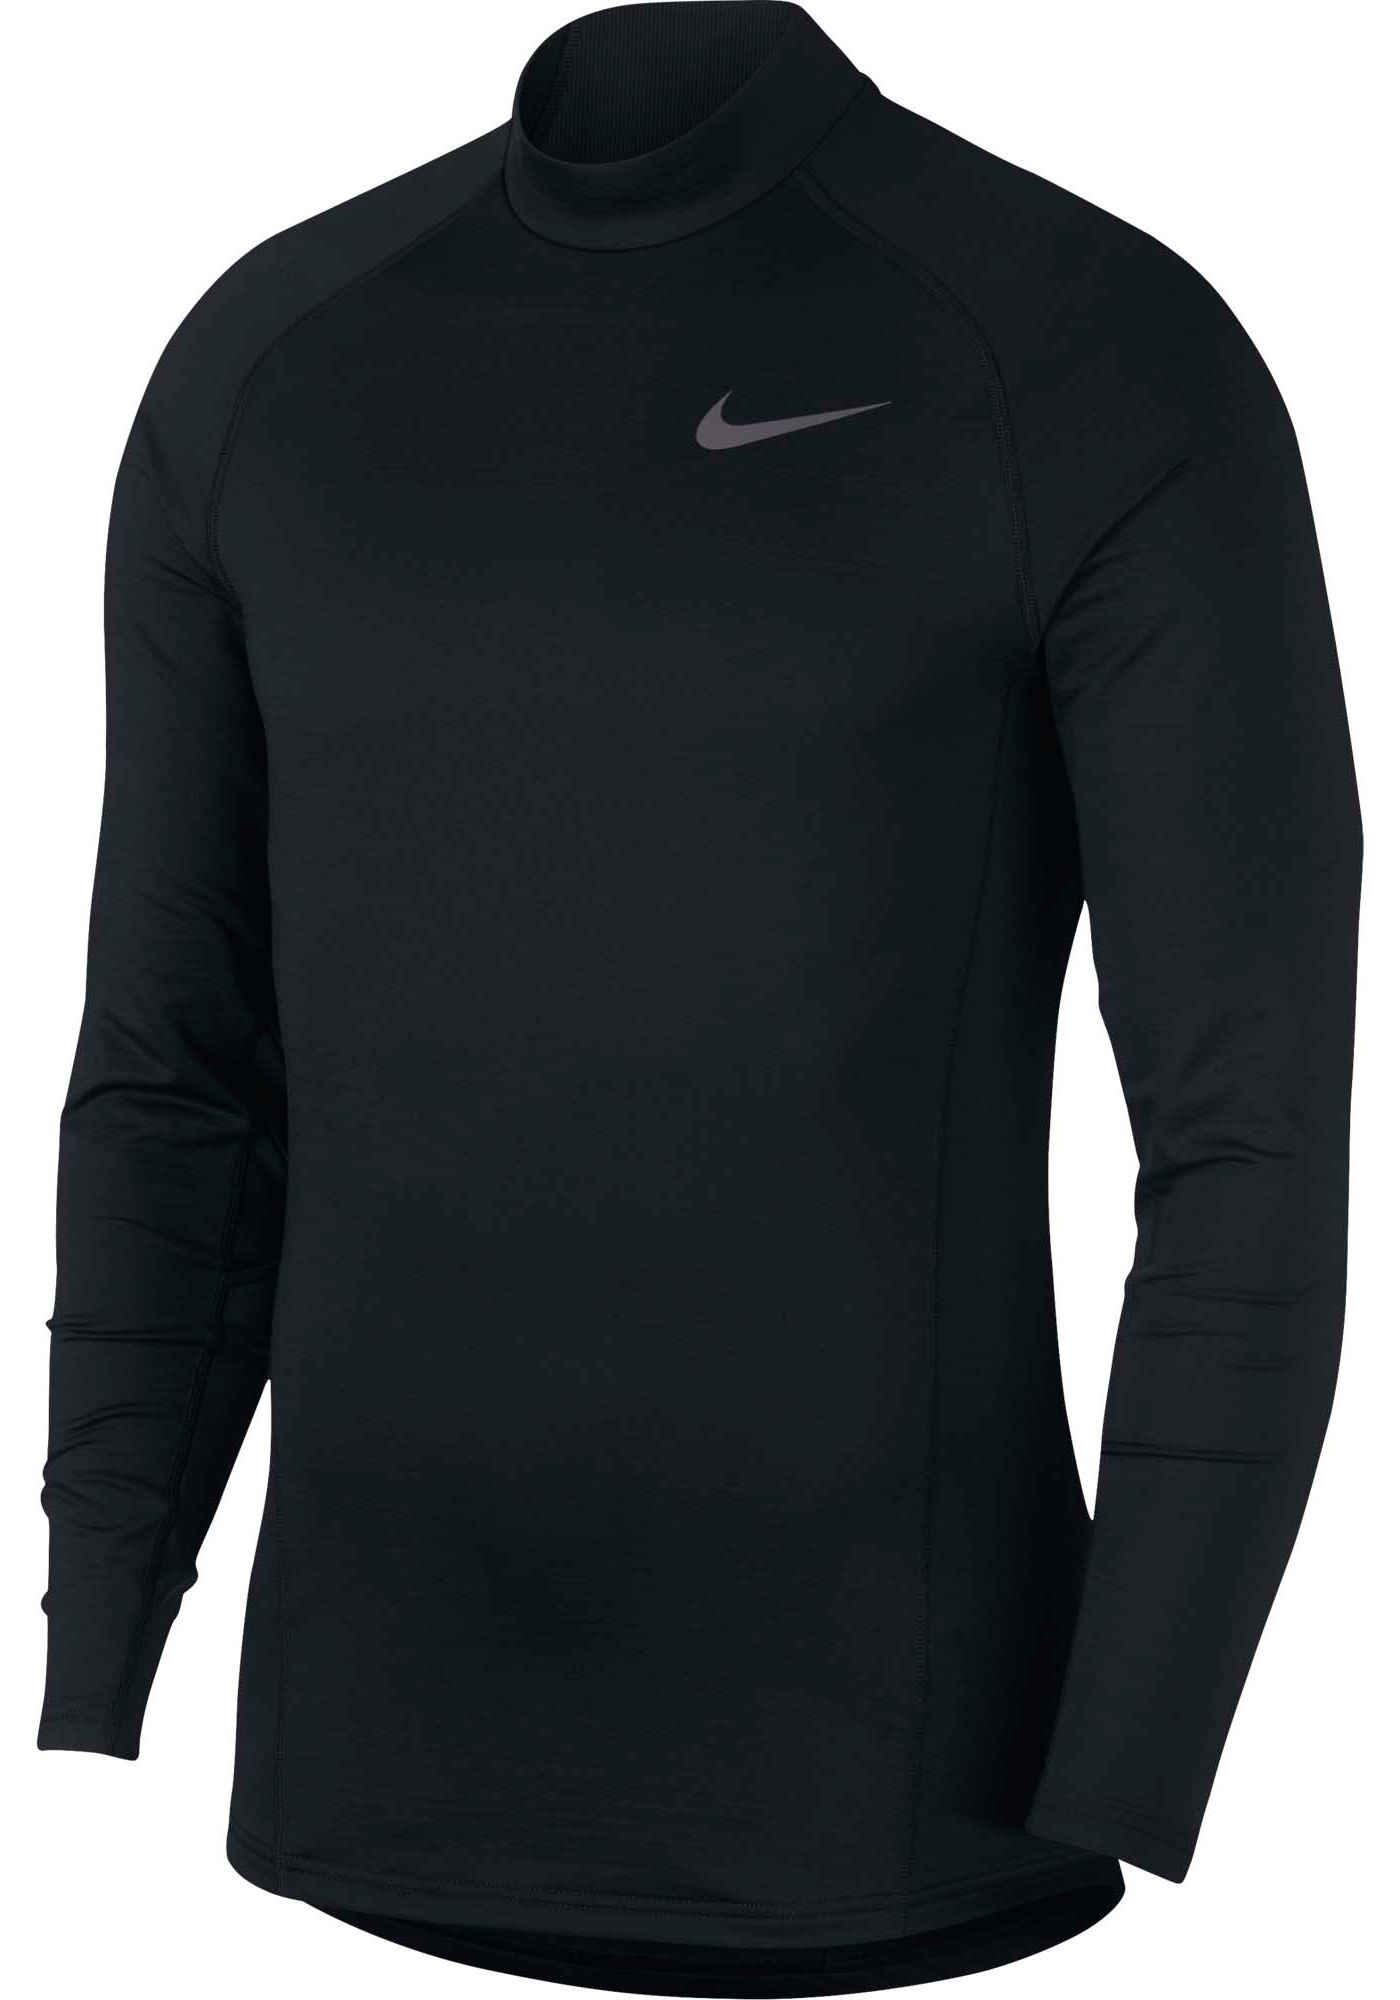 Nike Men's Therma Long Sleeve Shirt